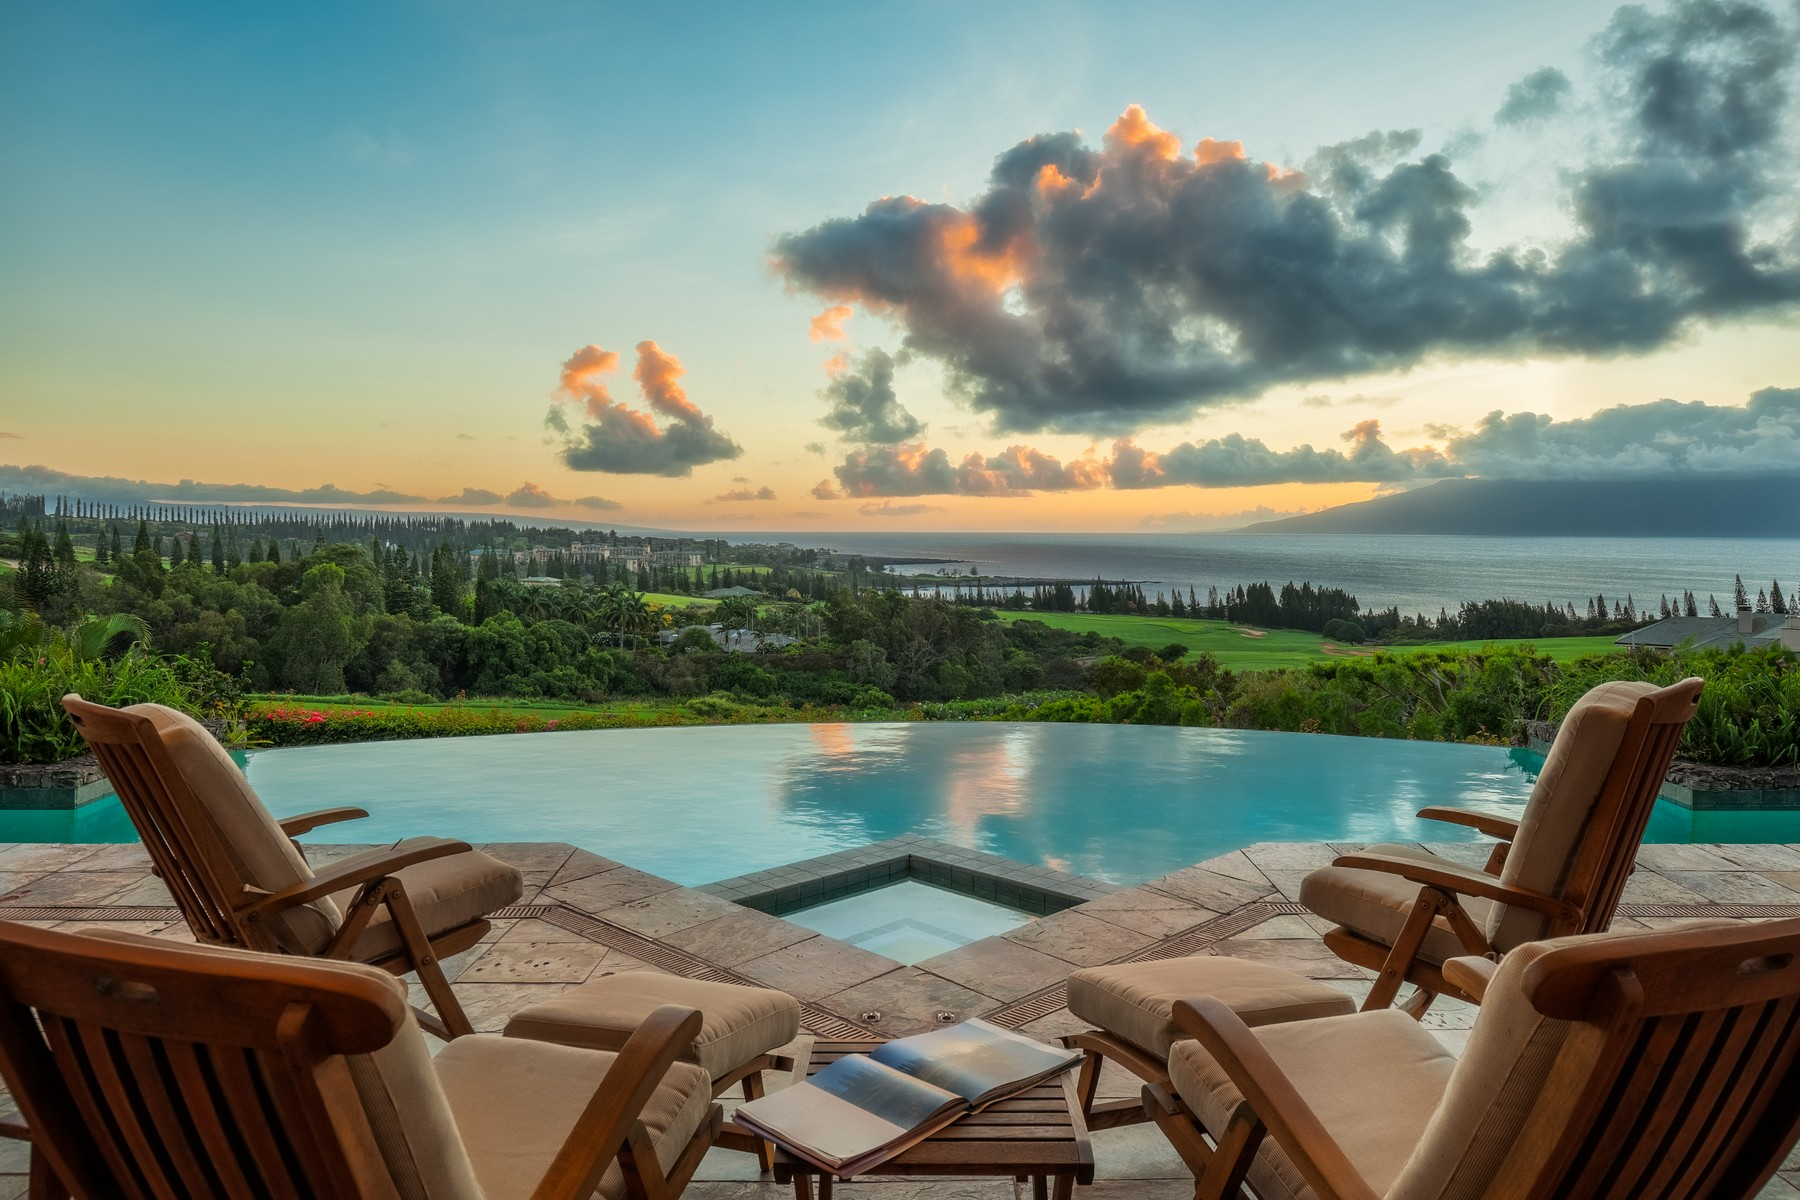 Maison unifamiliale pour l Vente à Dramatic Oceanview Estate Overlooking The Kapalua Plantation Course 212 Plantation Club Drive Kapalua, Hawaii 96761 États-Unis